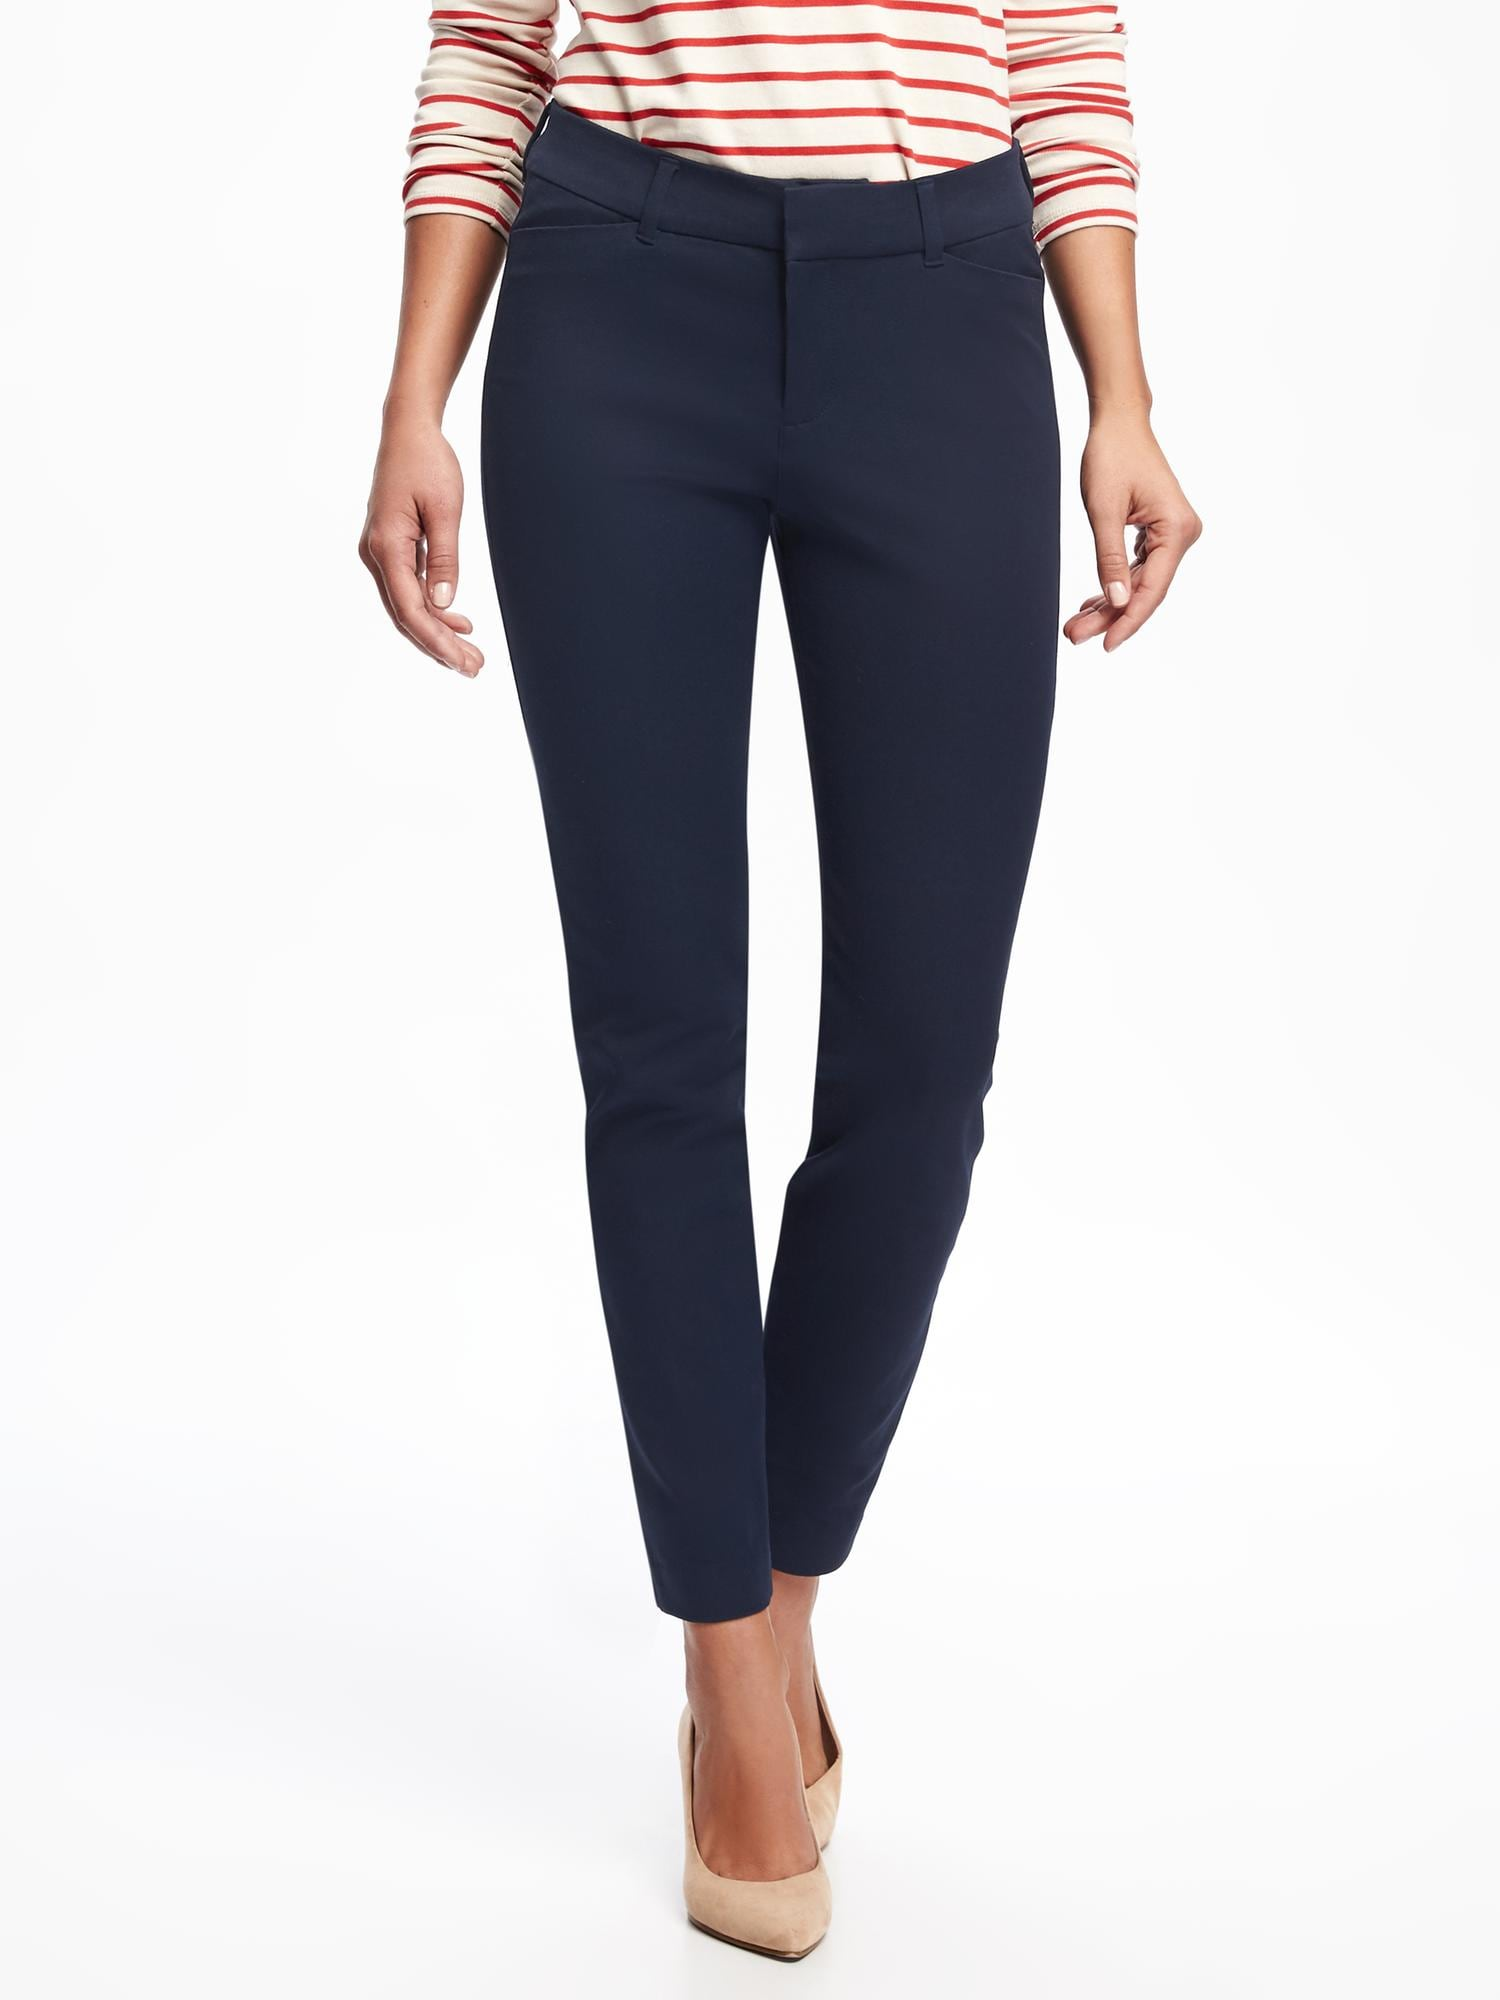 3148c0cd64f601 The Pixie Mid-Rise Ankle Pants | Old Navy